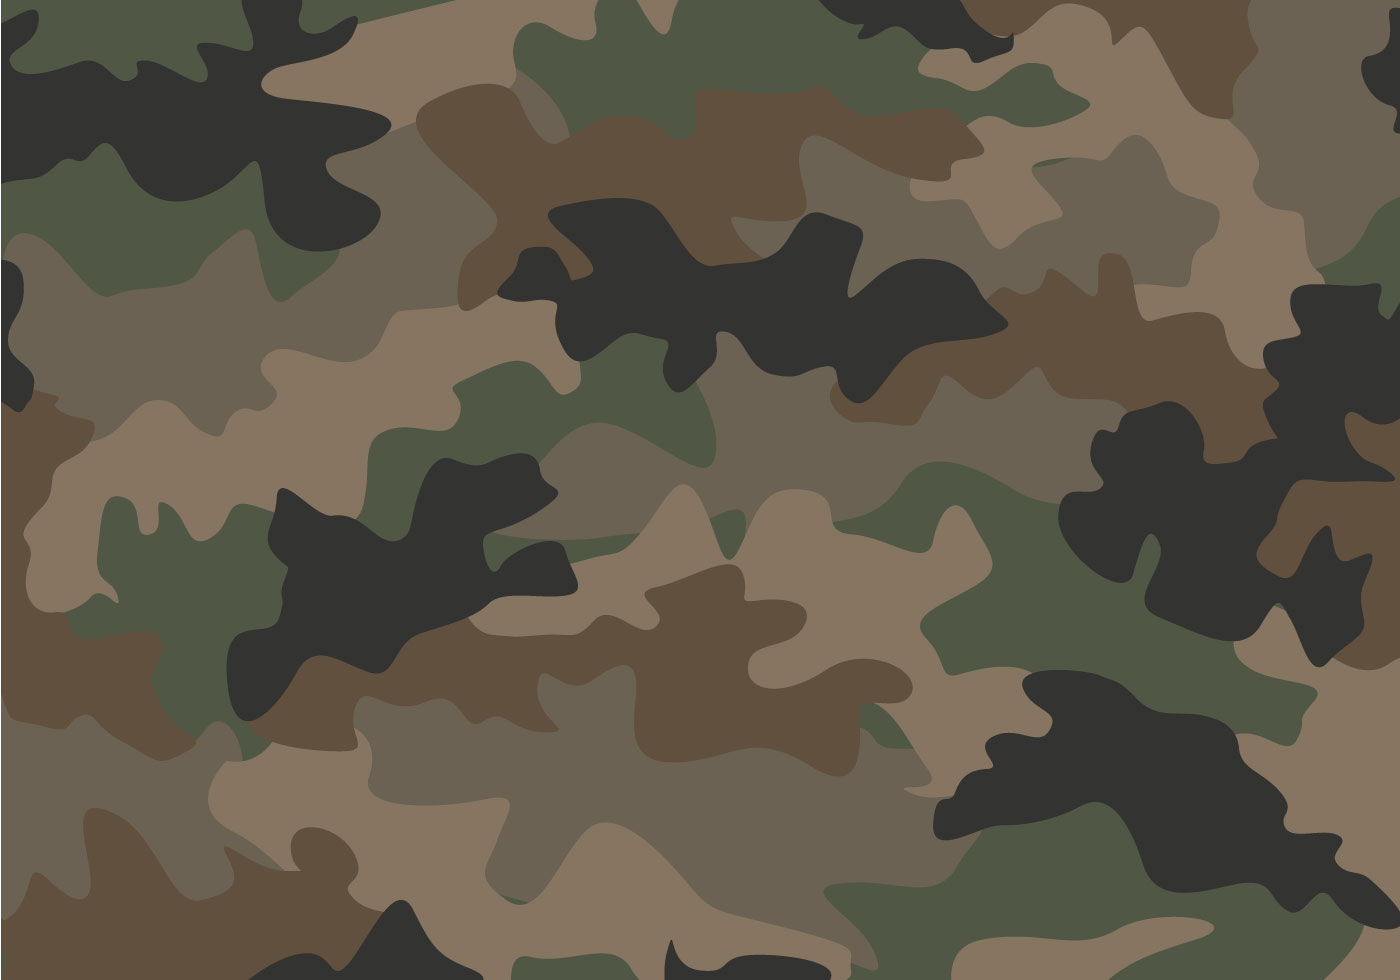 1400x980 Camouflage Seamless Pattern Free Vector Art